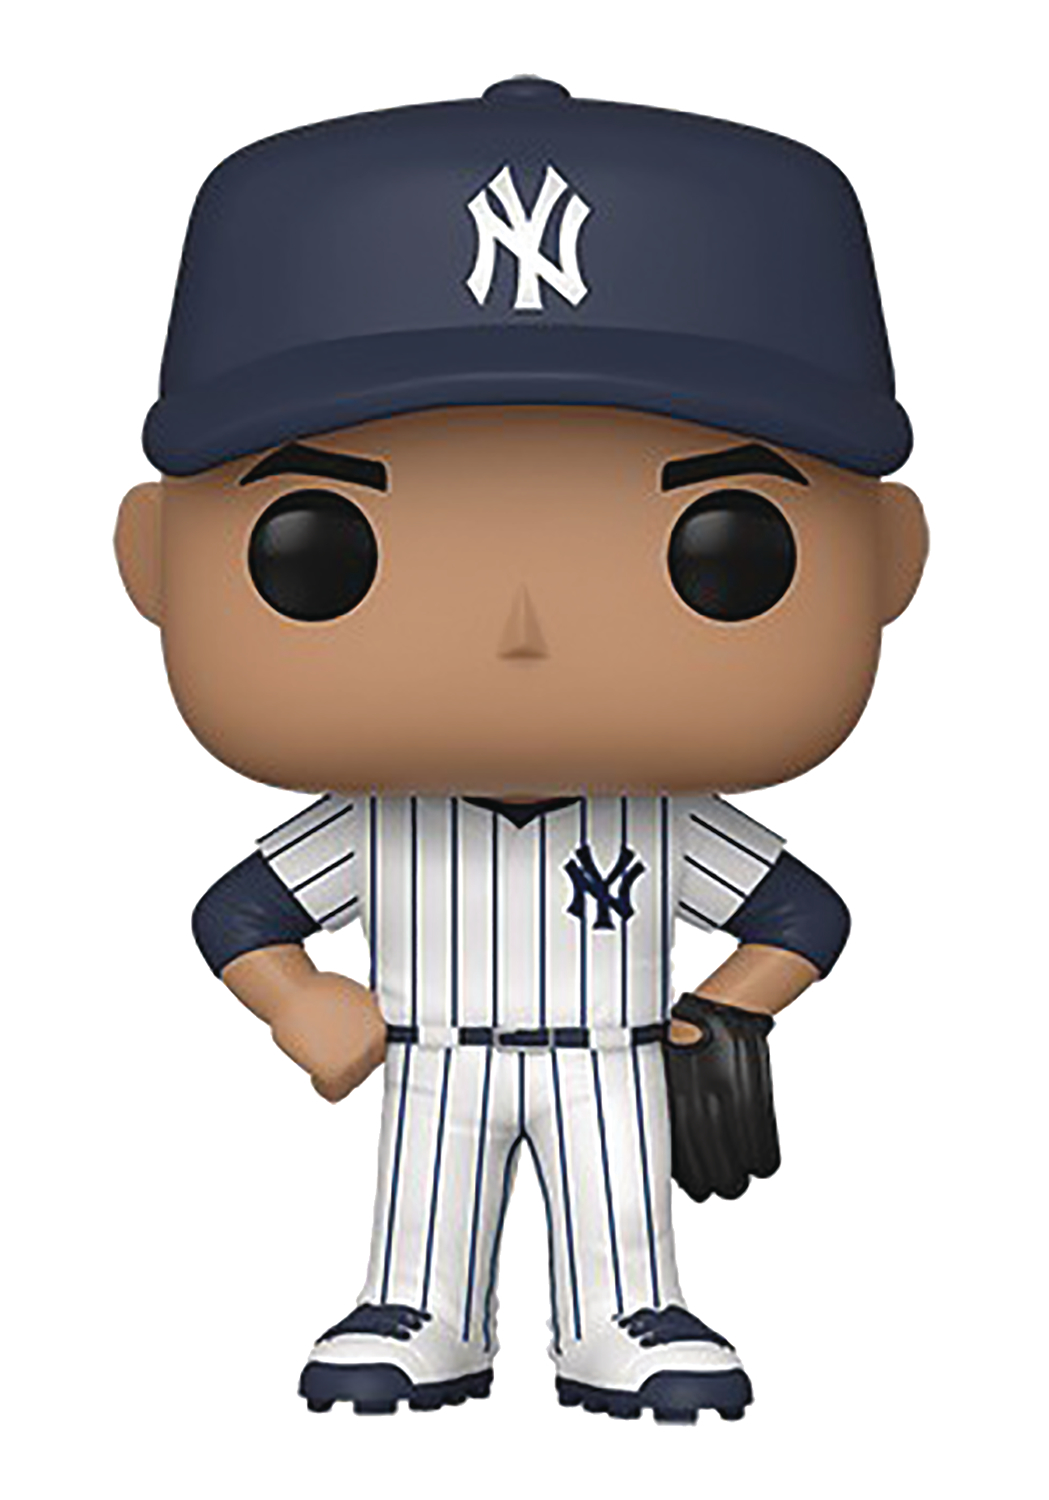 POP MLB YANKEES GLEYBER TORRES VIN FIG